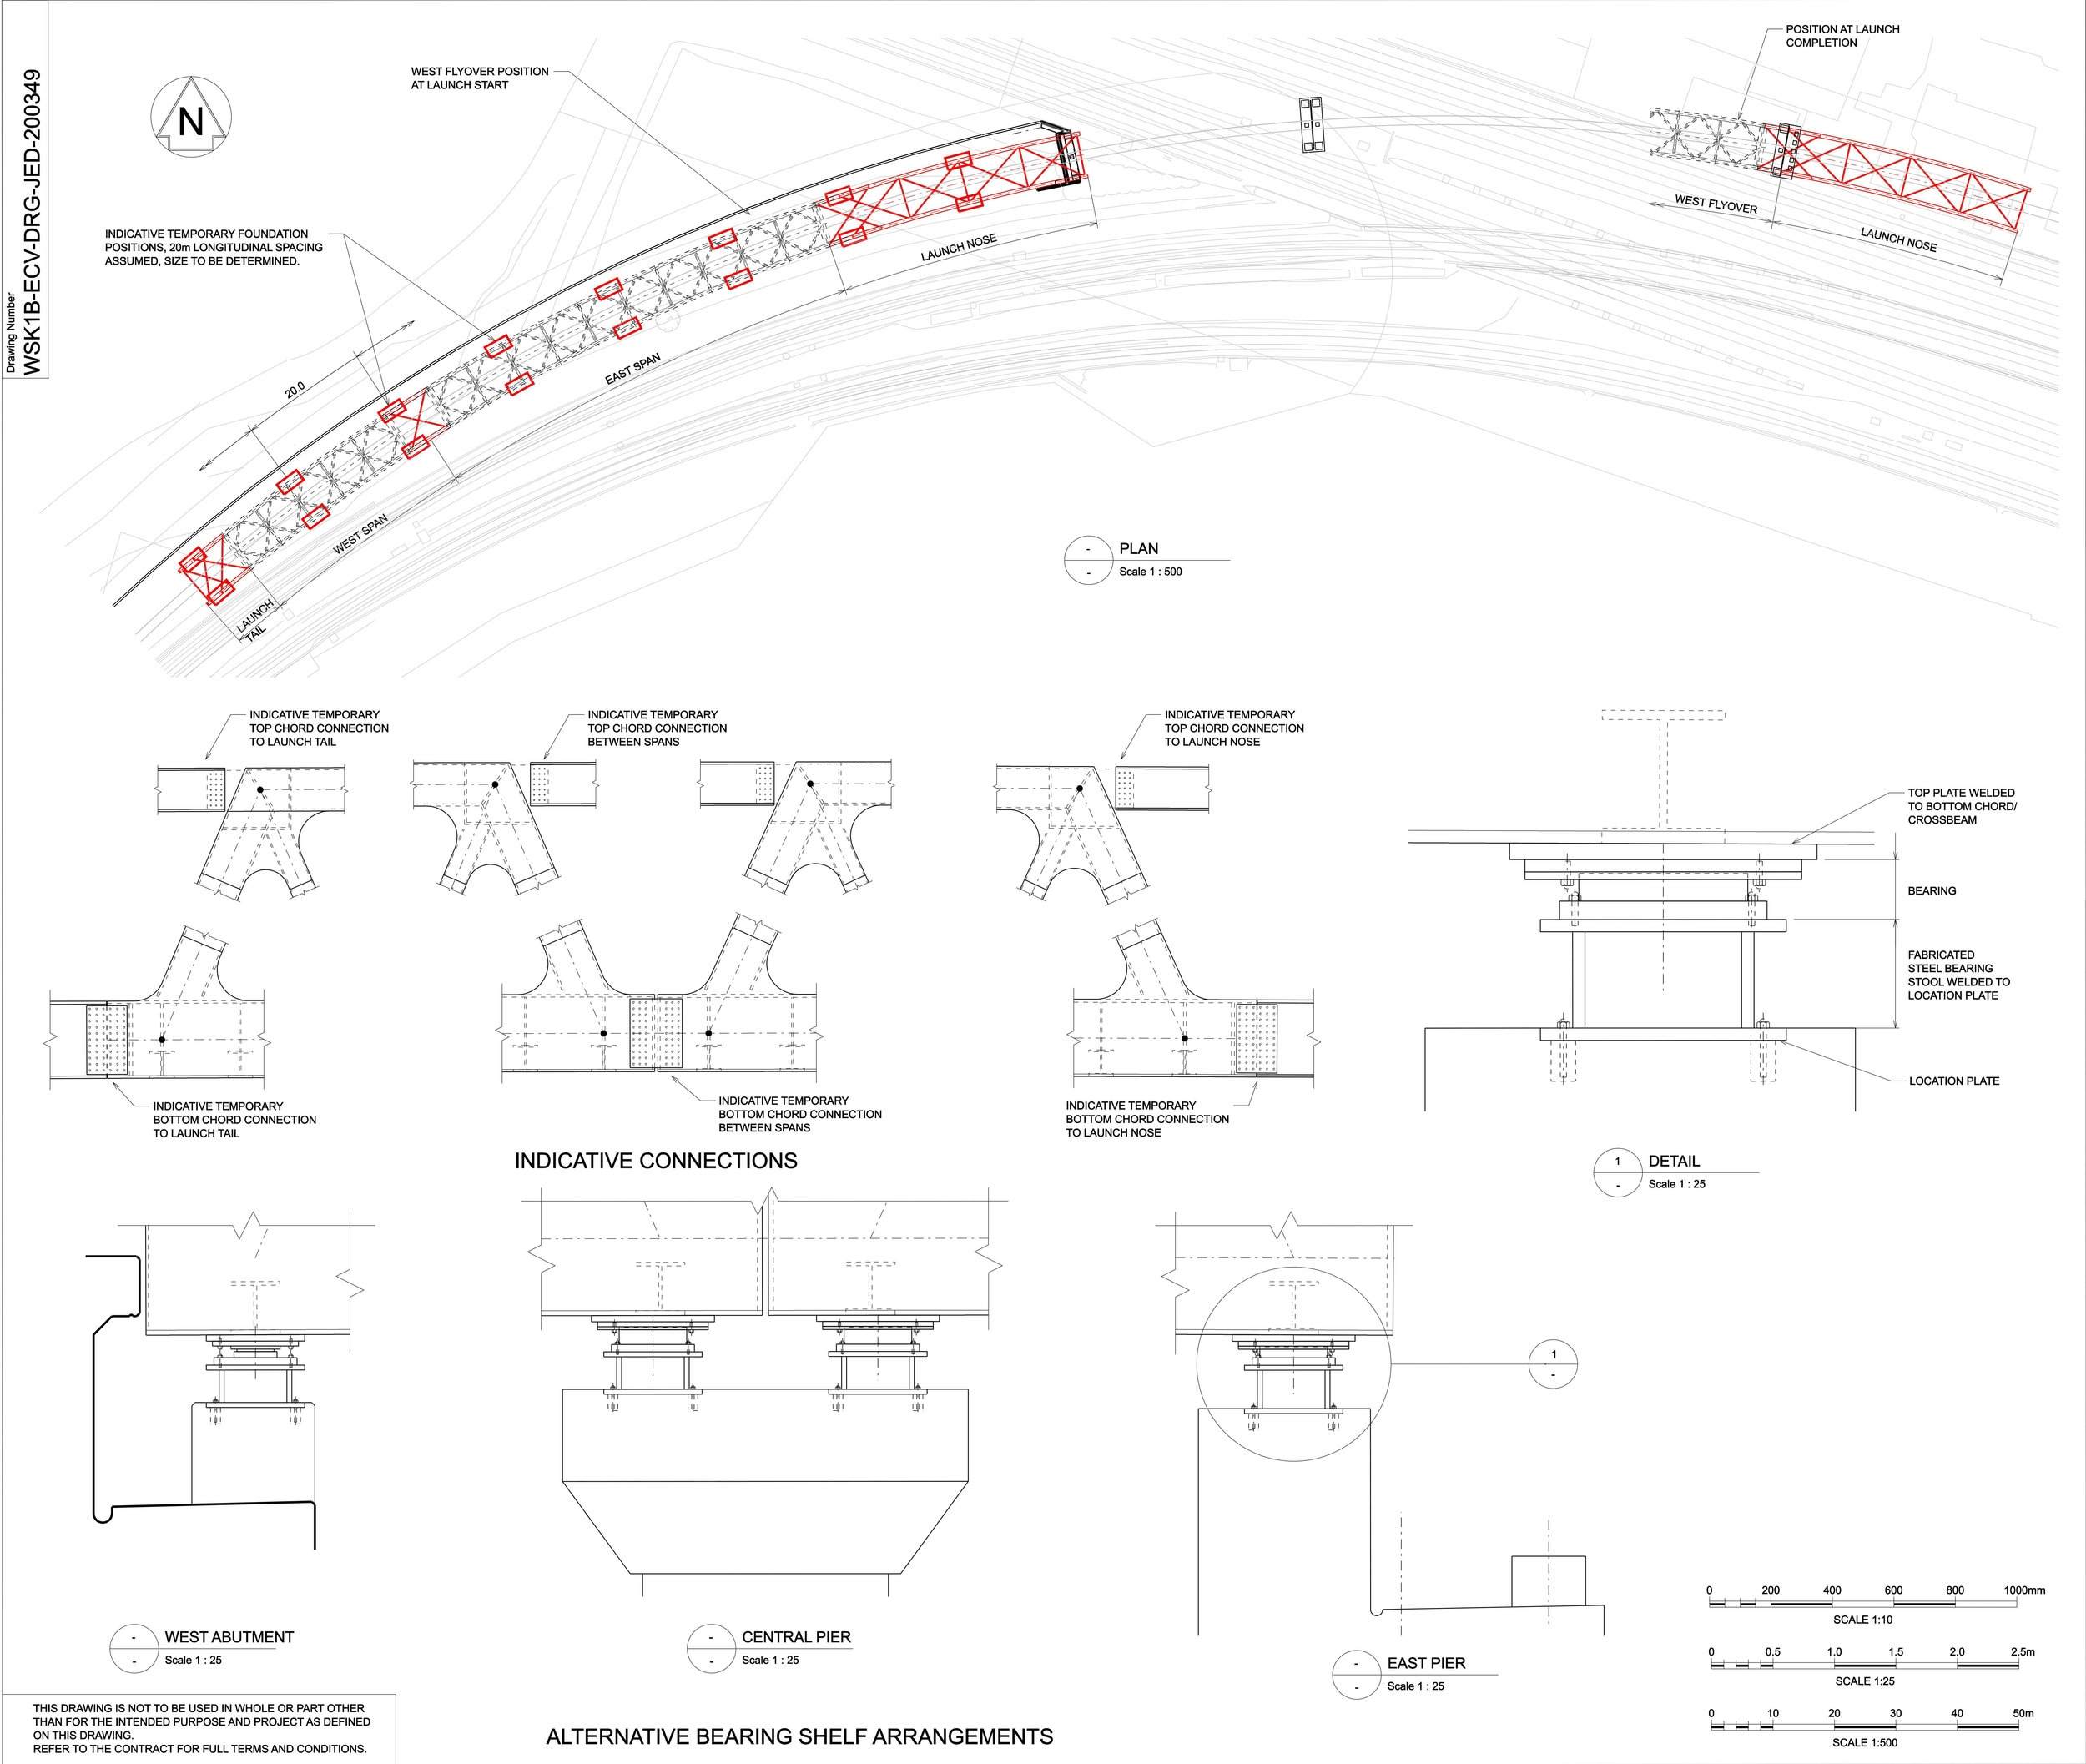 Design drawing of temporary works moving Stockley Flyover into position